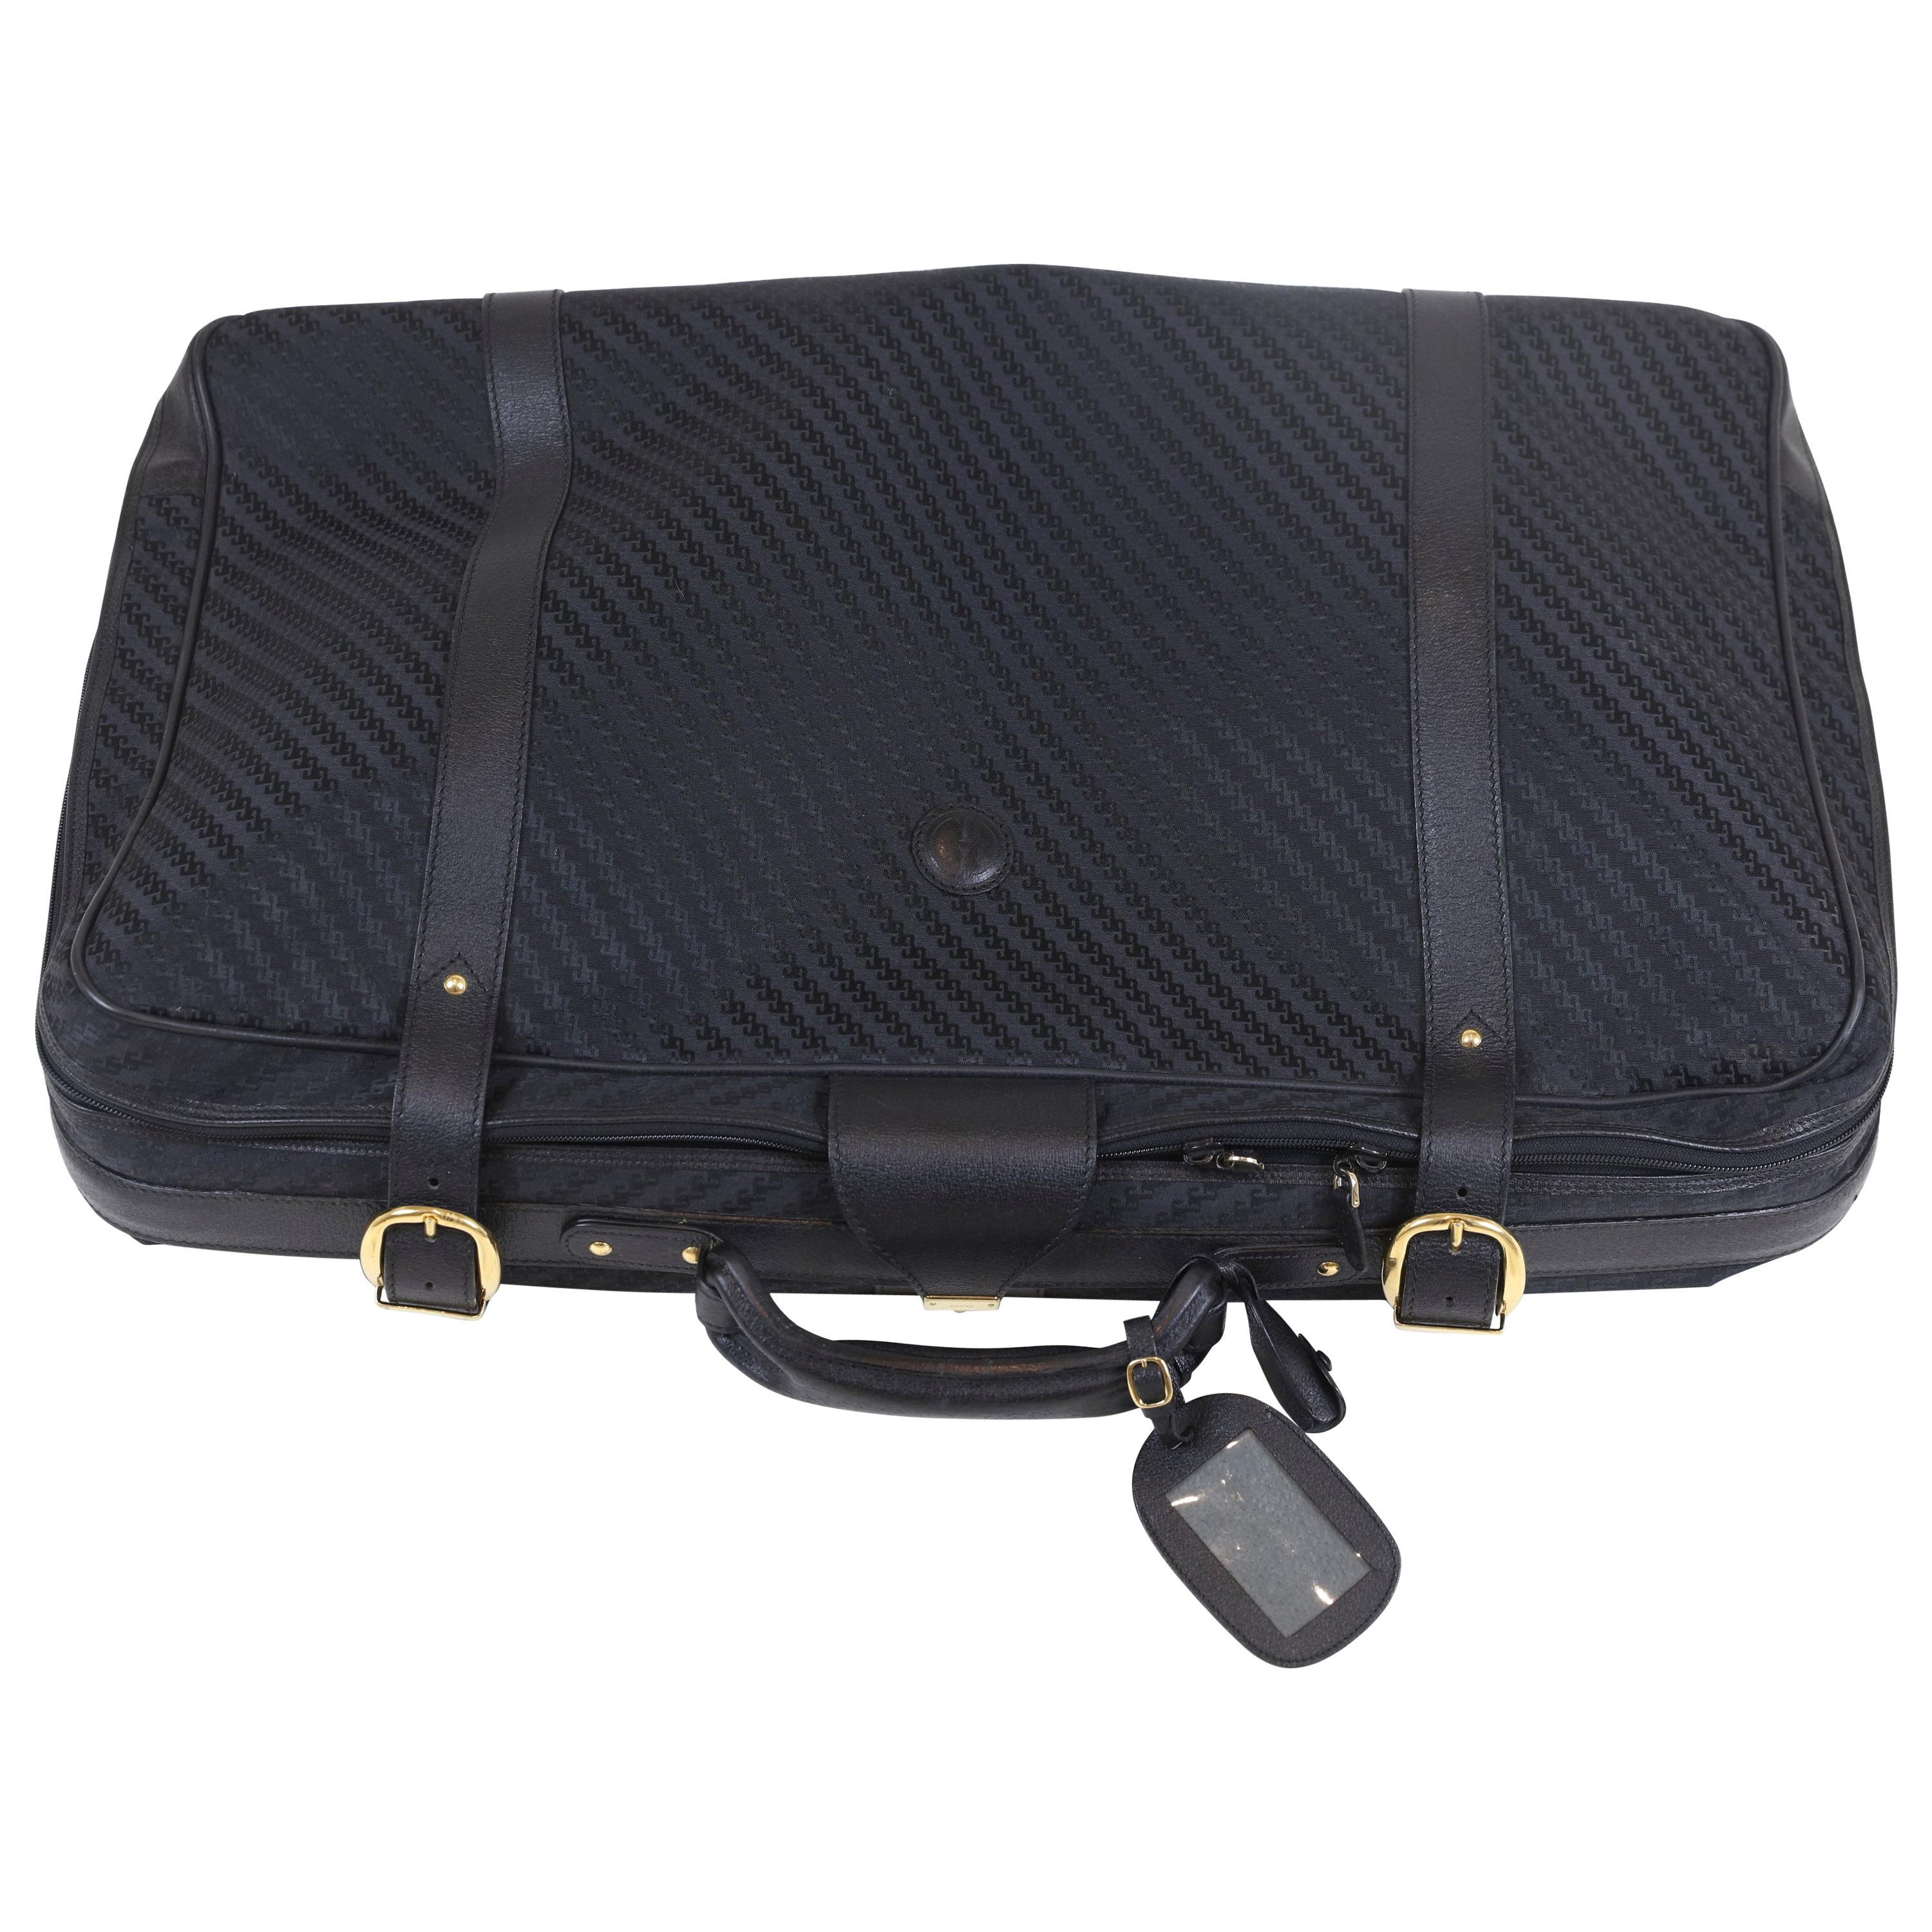 Gucci Large Suitcase with Gold Hardware & Lock Accent